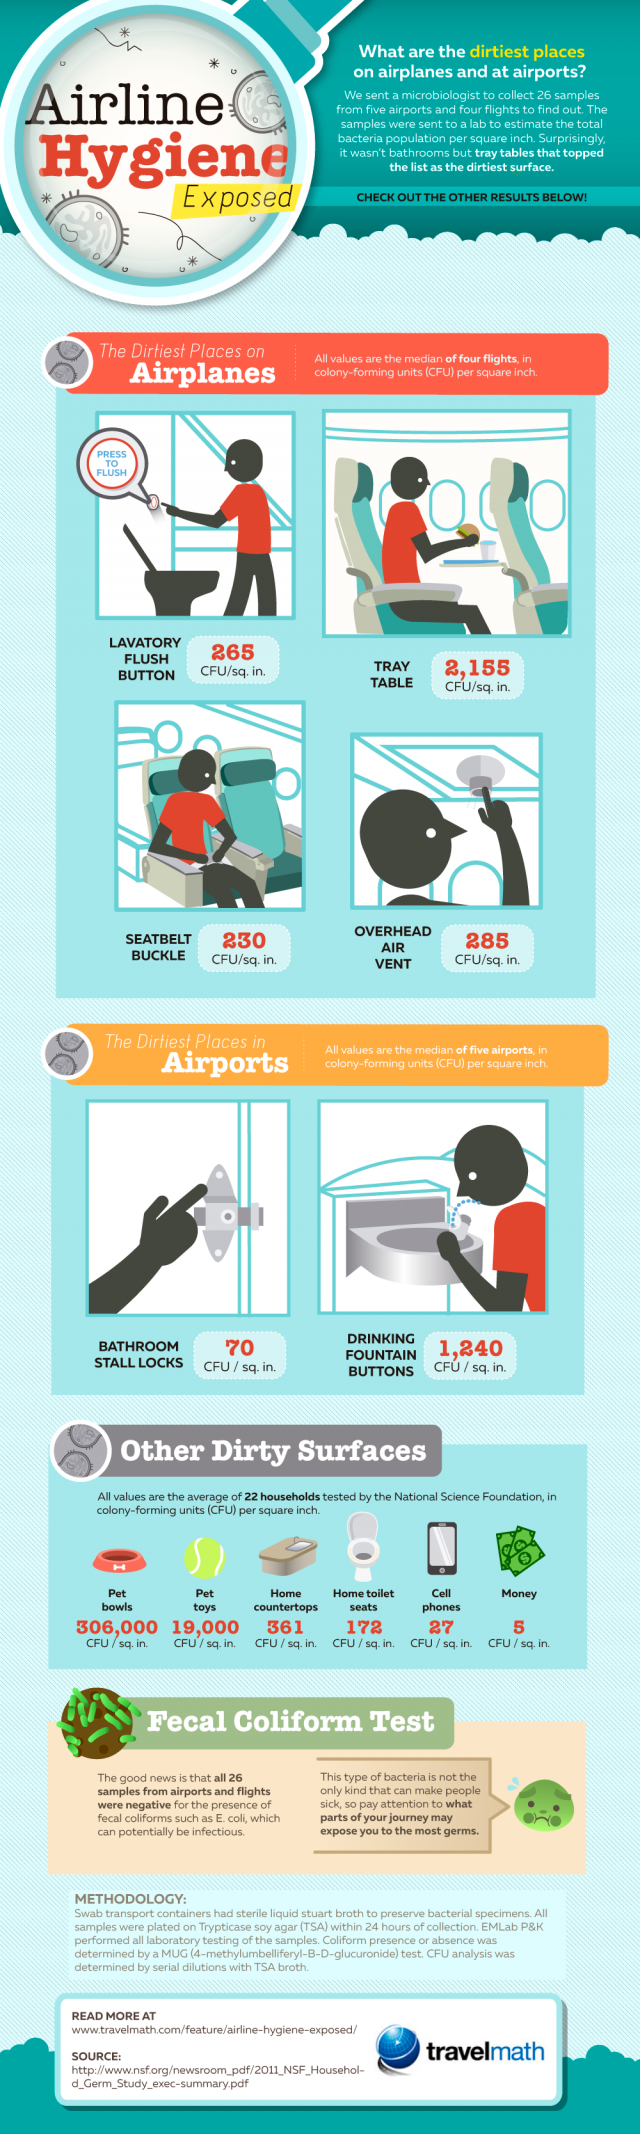 airline hygiene infographic - 1000px